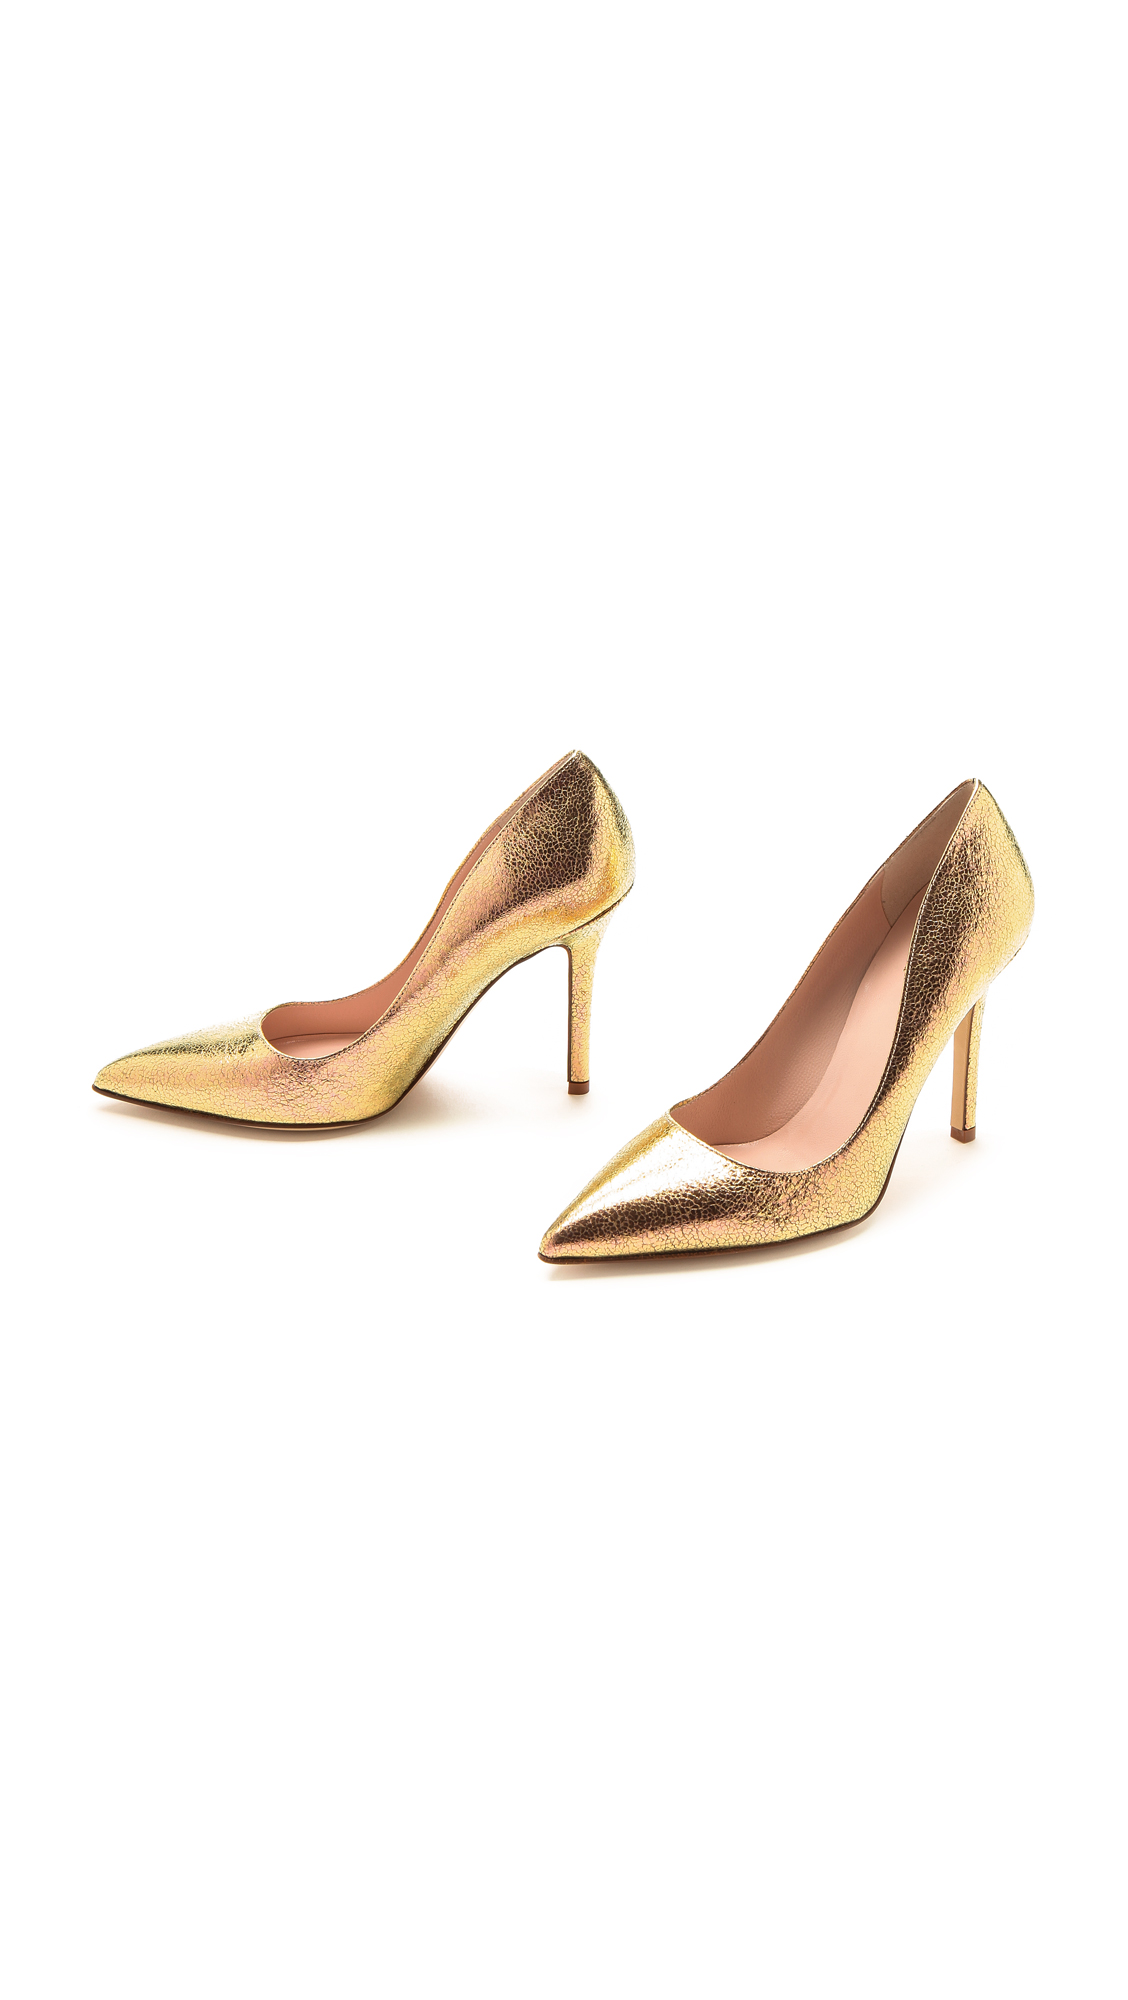 Kate spade new york larisa patent pumps